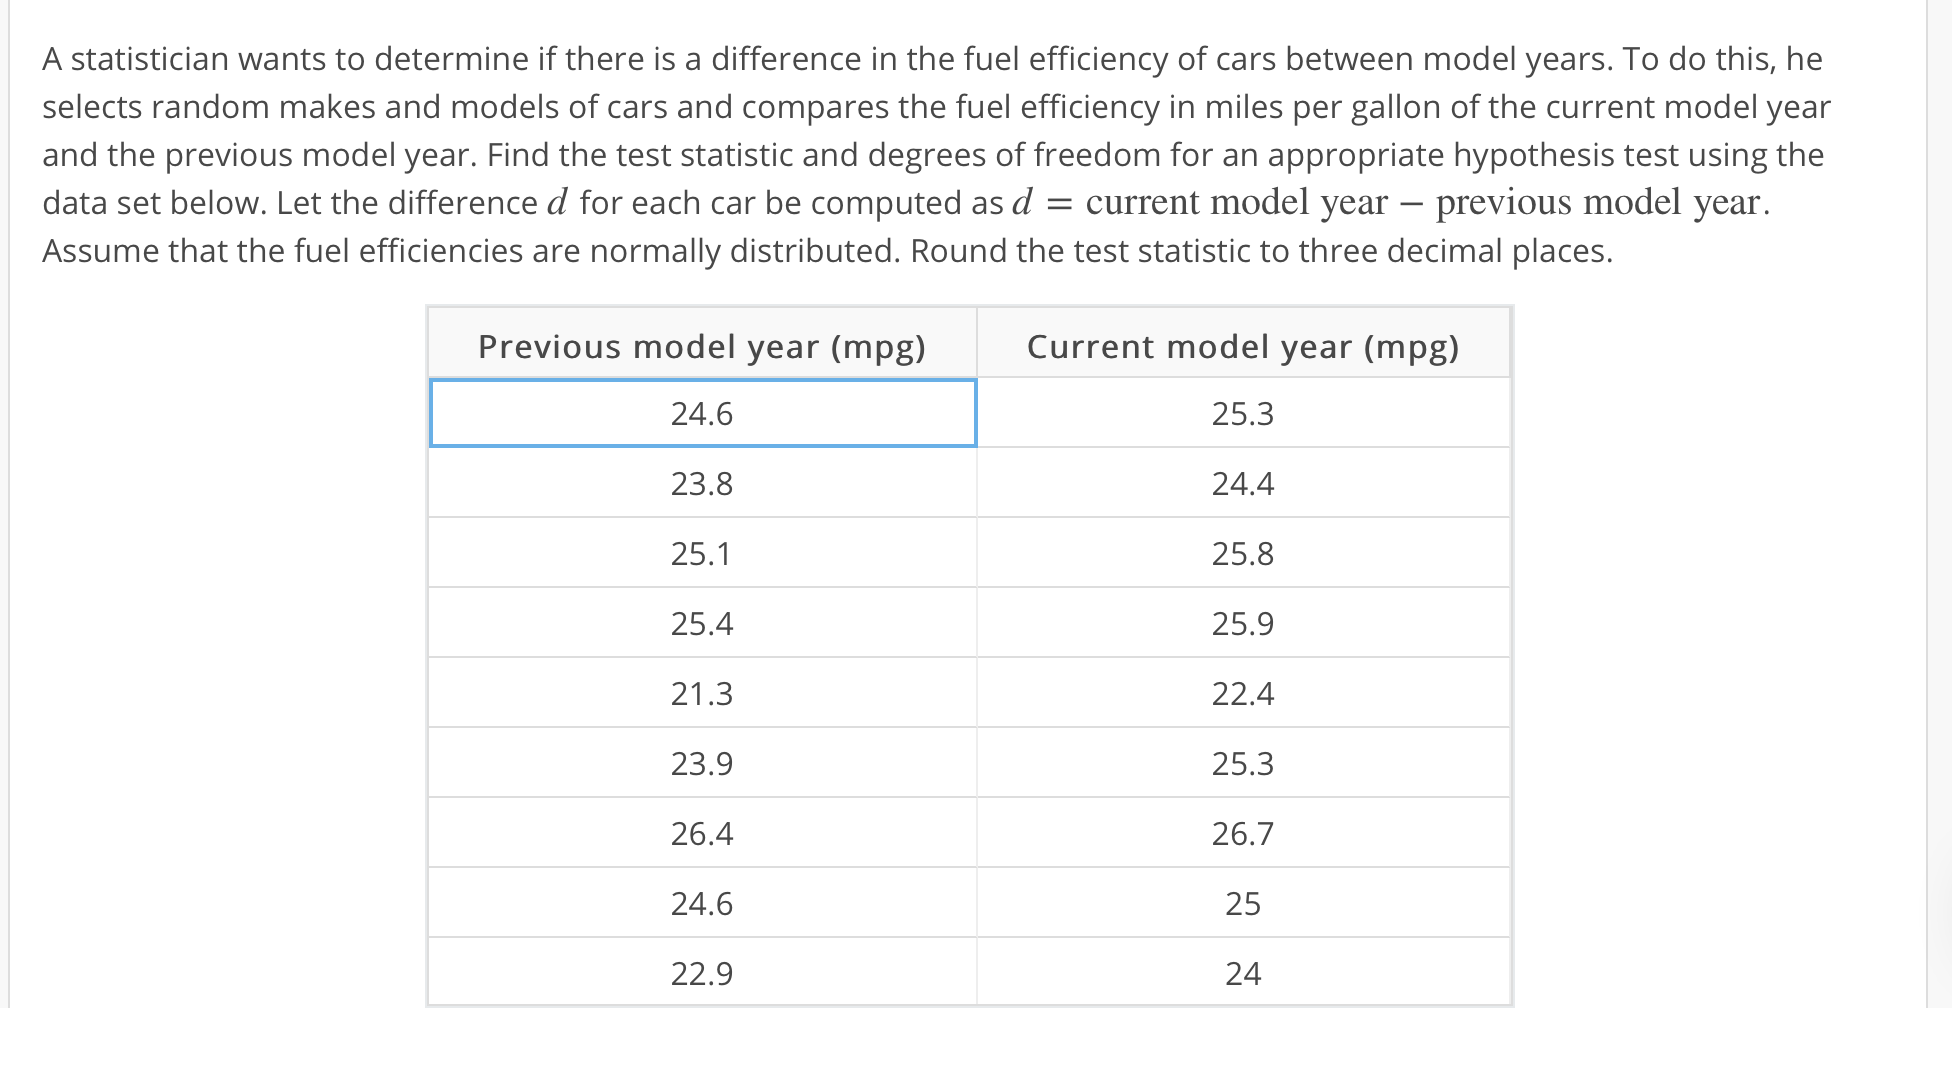 A statistician wants to determine if there is a difference in the fuel efficiency of cars between model years. To do this, he selects random makes and models of cars and compares the fuel efficiency in miles per gallon of the current model year and the previous model year. Find the test statistic and degrees of freedom for an appropriate hypothesis test using the data set below. Let the difference ₫ for each car be computed as ₫ current model year-previous model year Assume that the fuel efficiencies are normally distributed. Round the test statistic to three decimal places. Previous model year (mpg) 24.6 23.8 25.1 25.4 21.3 23.9 26.4 24.6 22.9 Current model year (mpg) 25.3 24.4 25.8 25.9 22.4 25.3 26.7 25 24